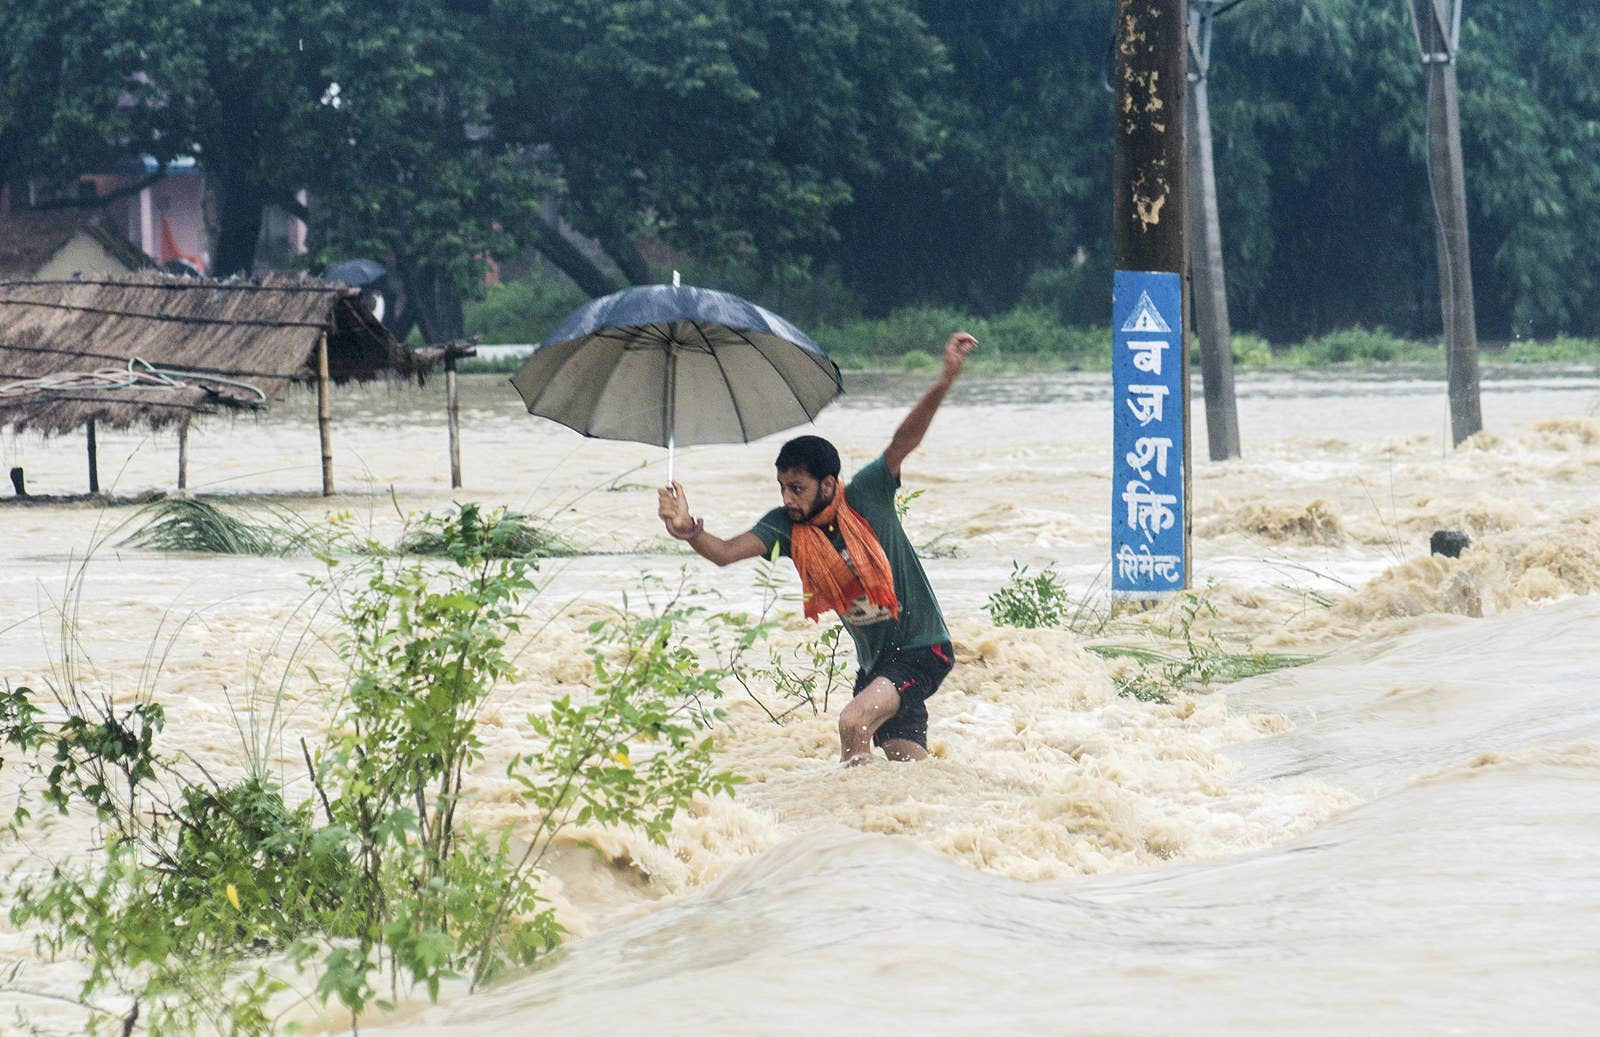 A man tries to cross a flooded street in Birgunj, Nepal. Heavy rains have hit more than a dozen districts in the country's far eastern region as well as some areas in the west.